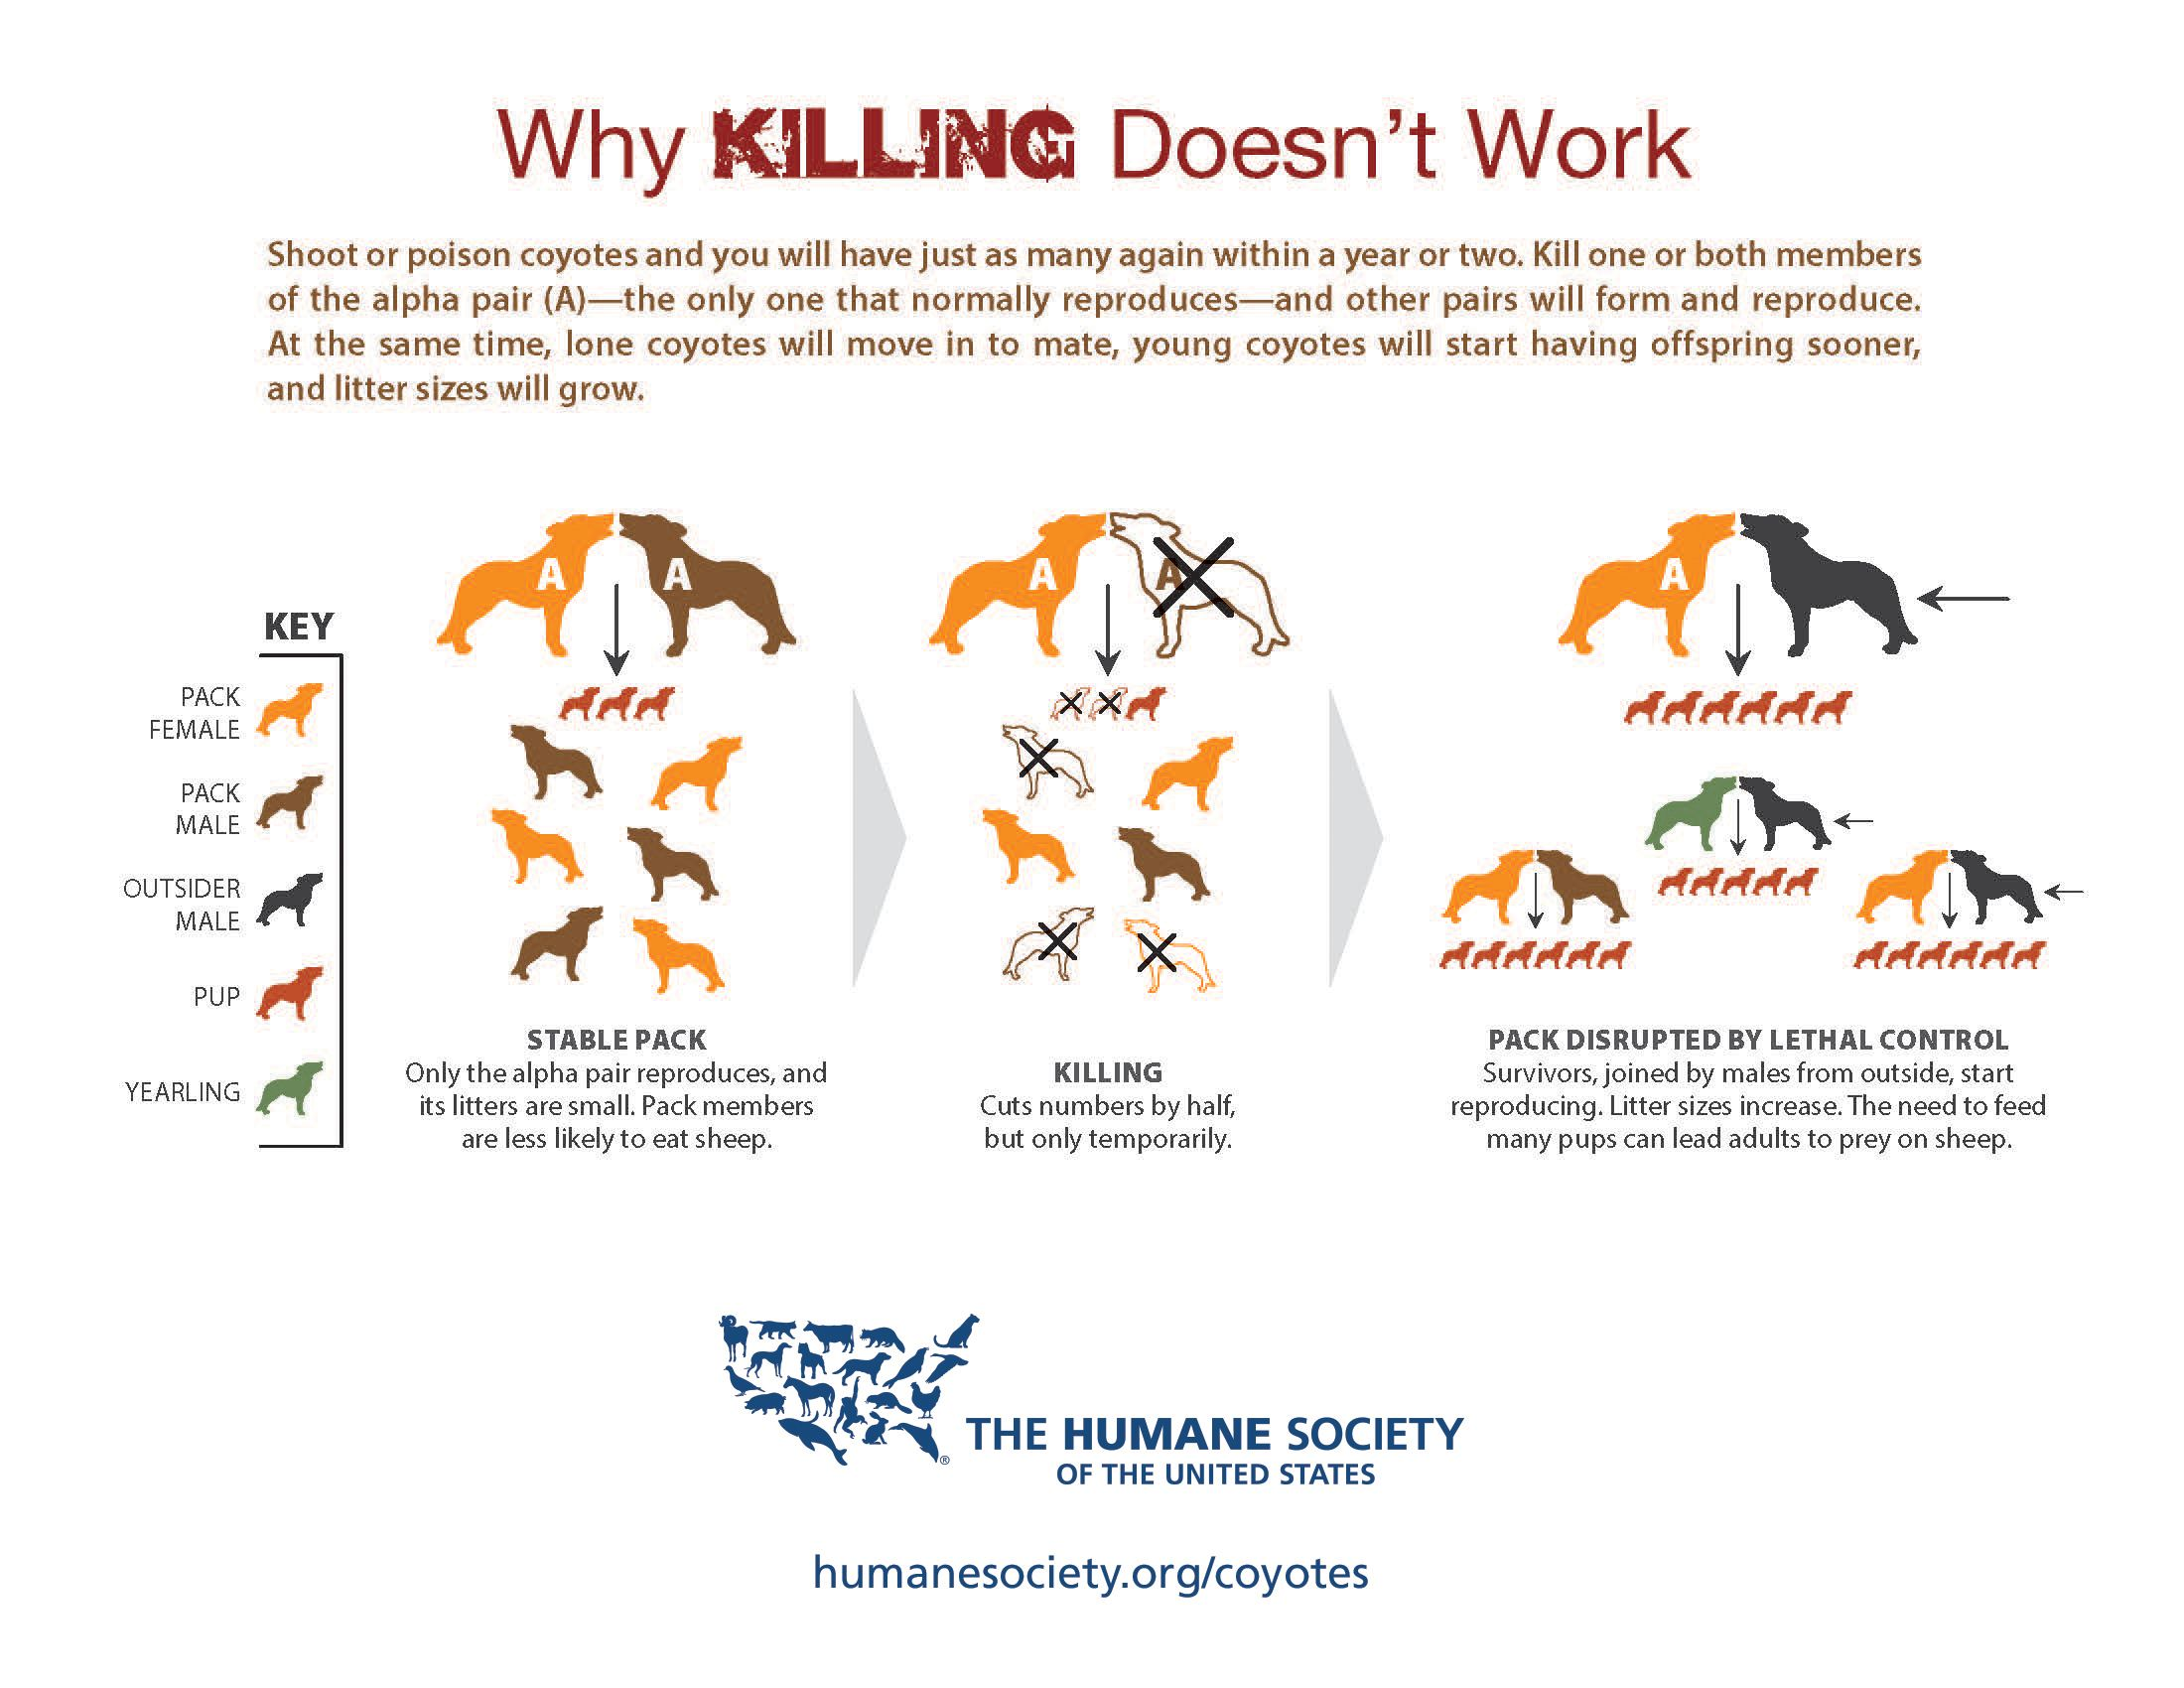 Why Killing Coyotes Doesn't Work : The Humane Society of the United States